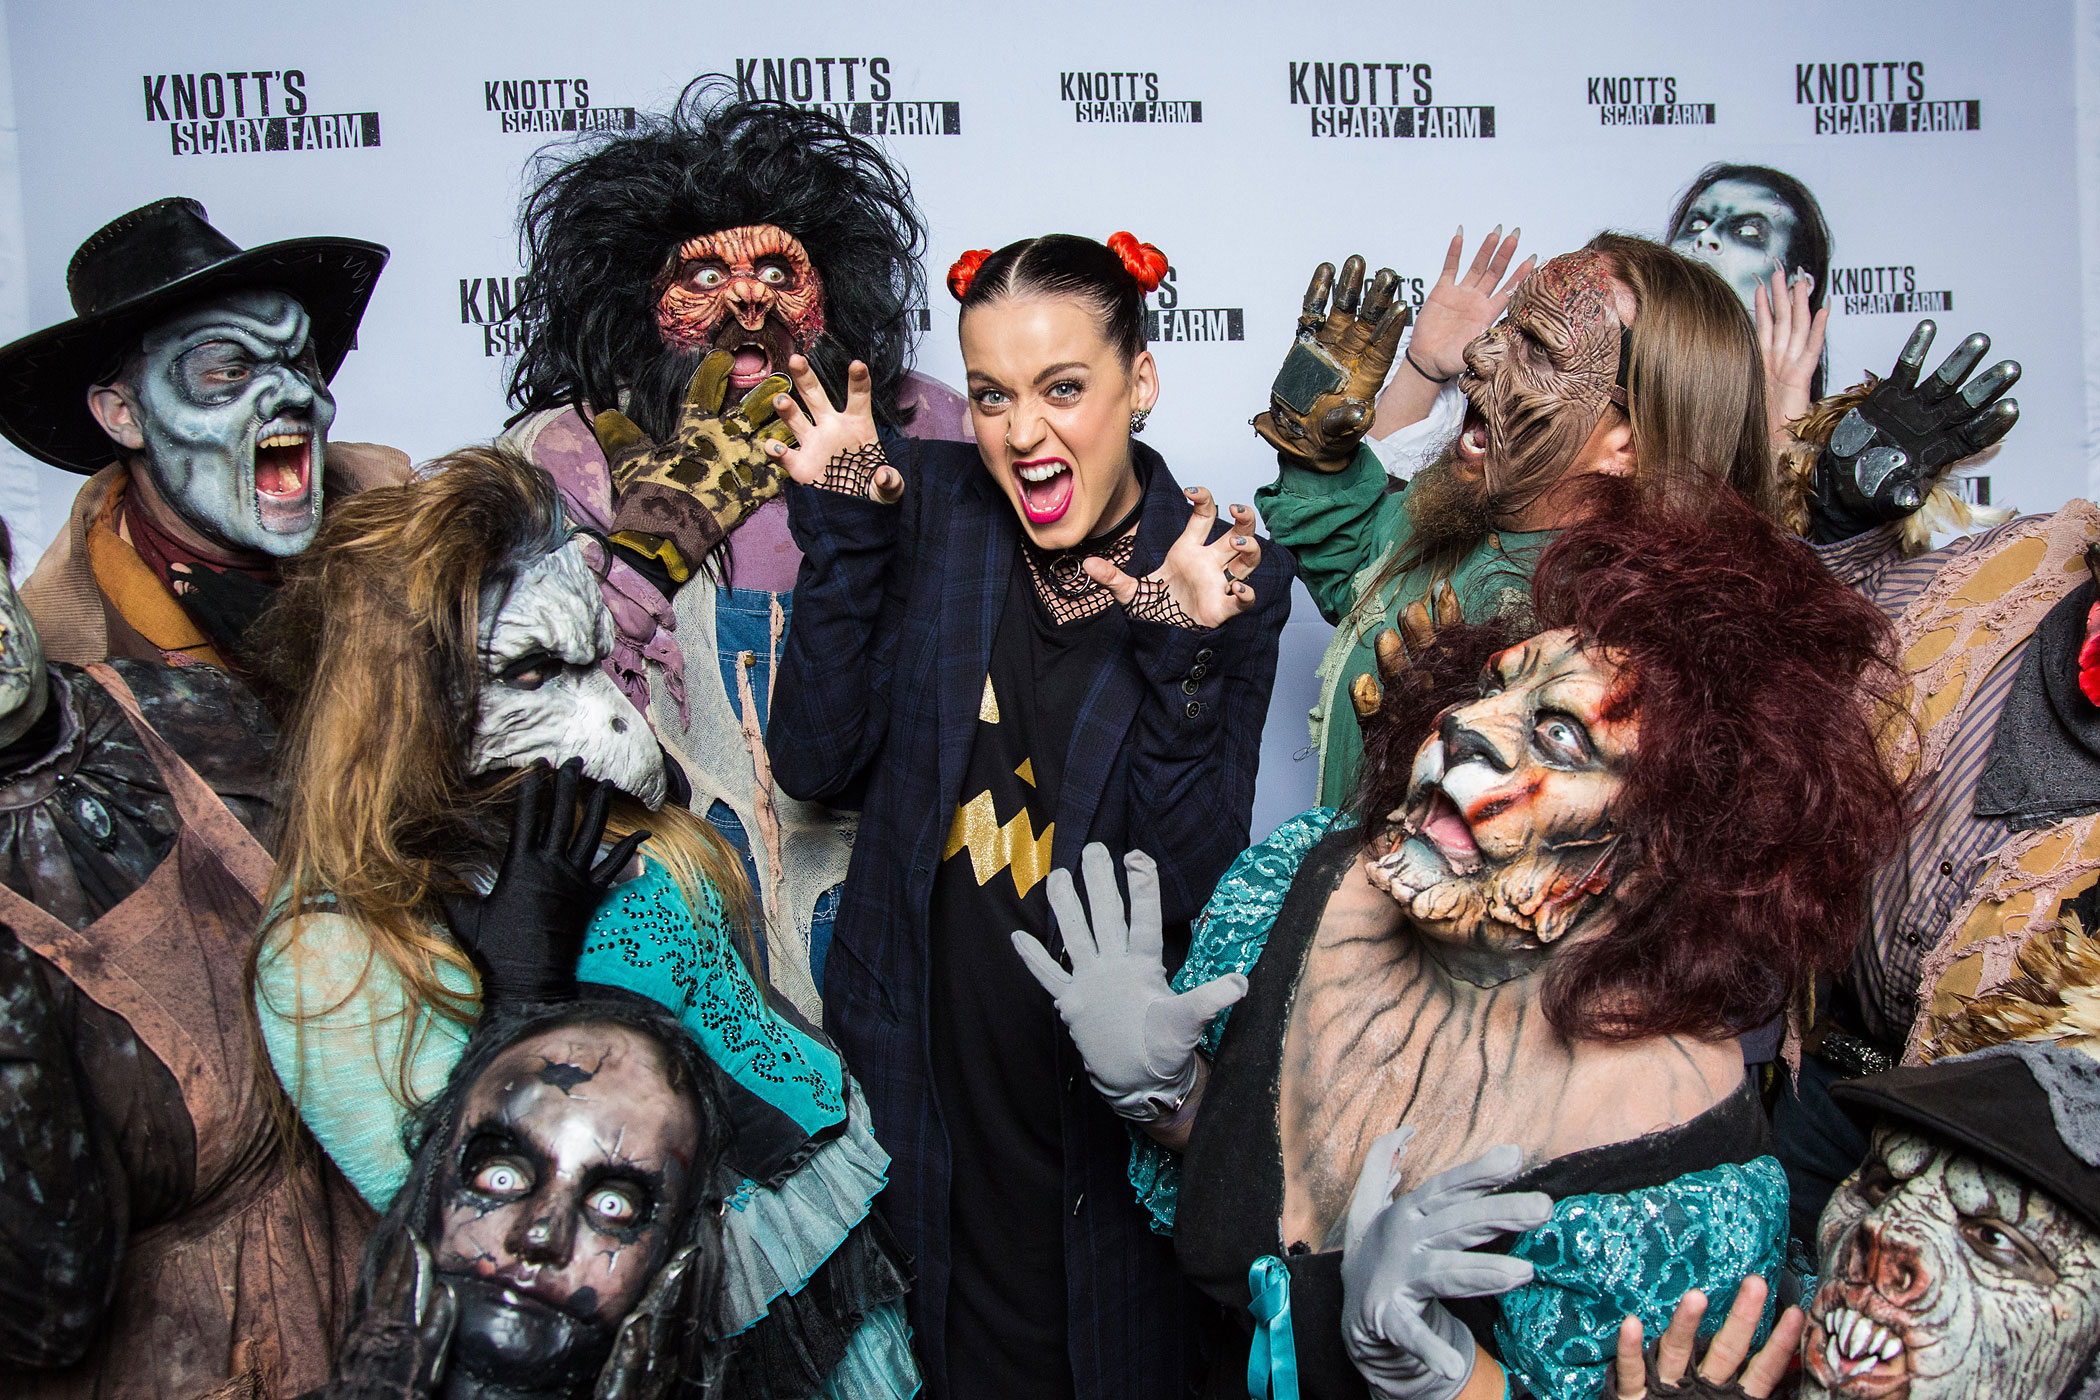 Katy Perry visits Knott's Scary Farm October 11, 2014 in Buena Park, Calif.